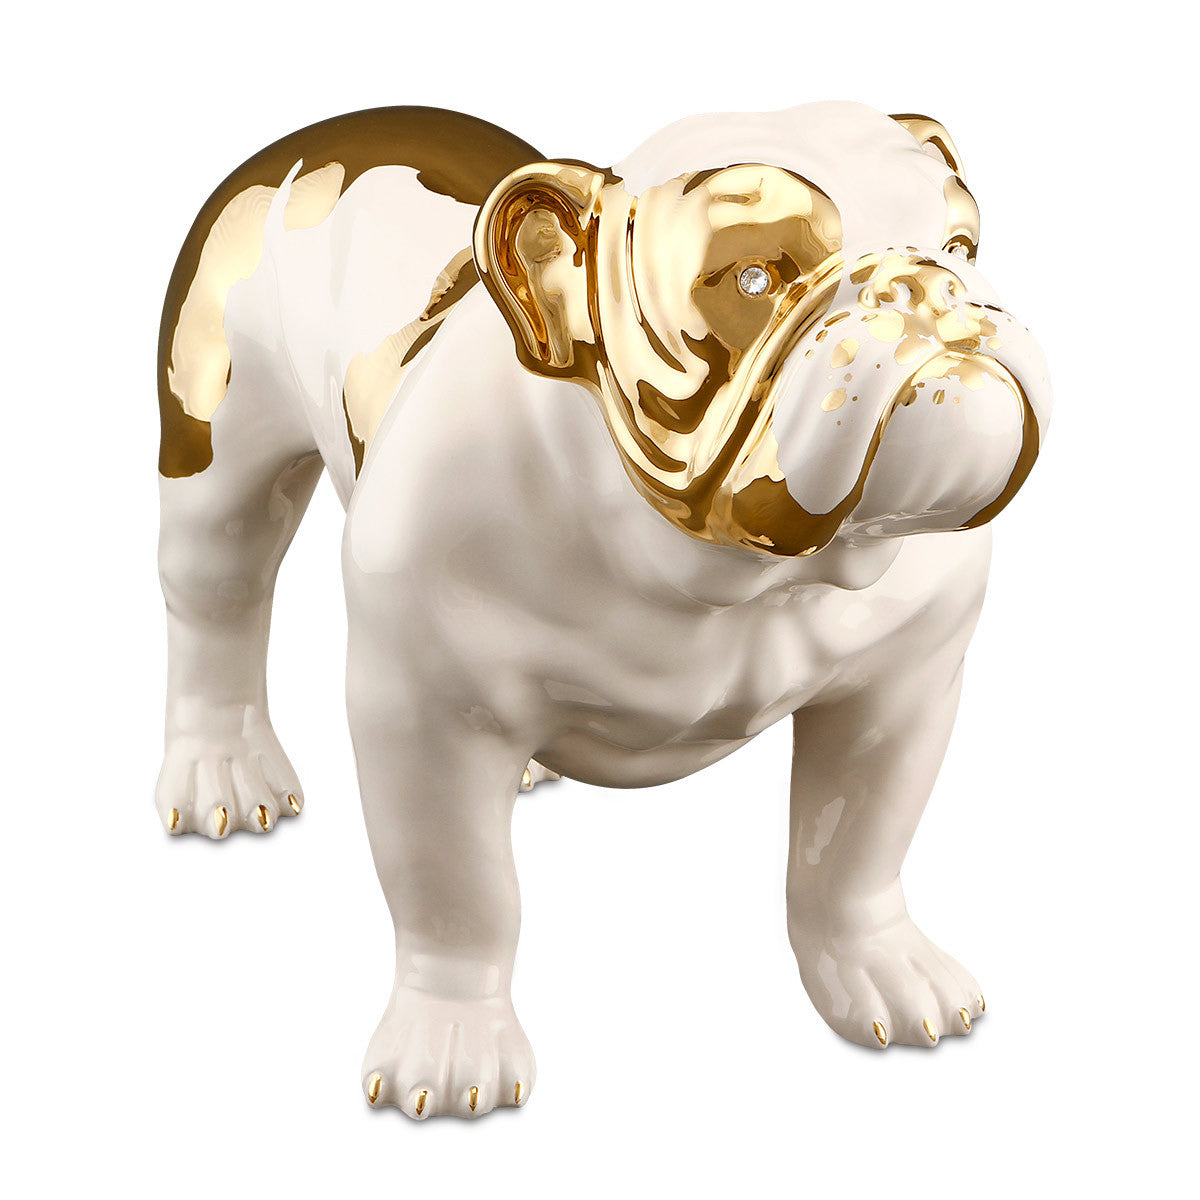 Ceramic english bulldog statue-animal gifts